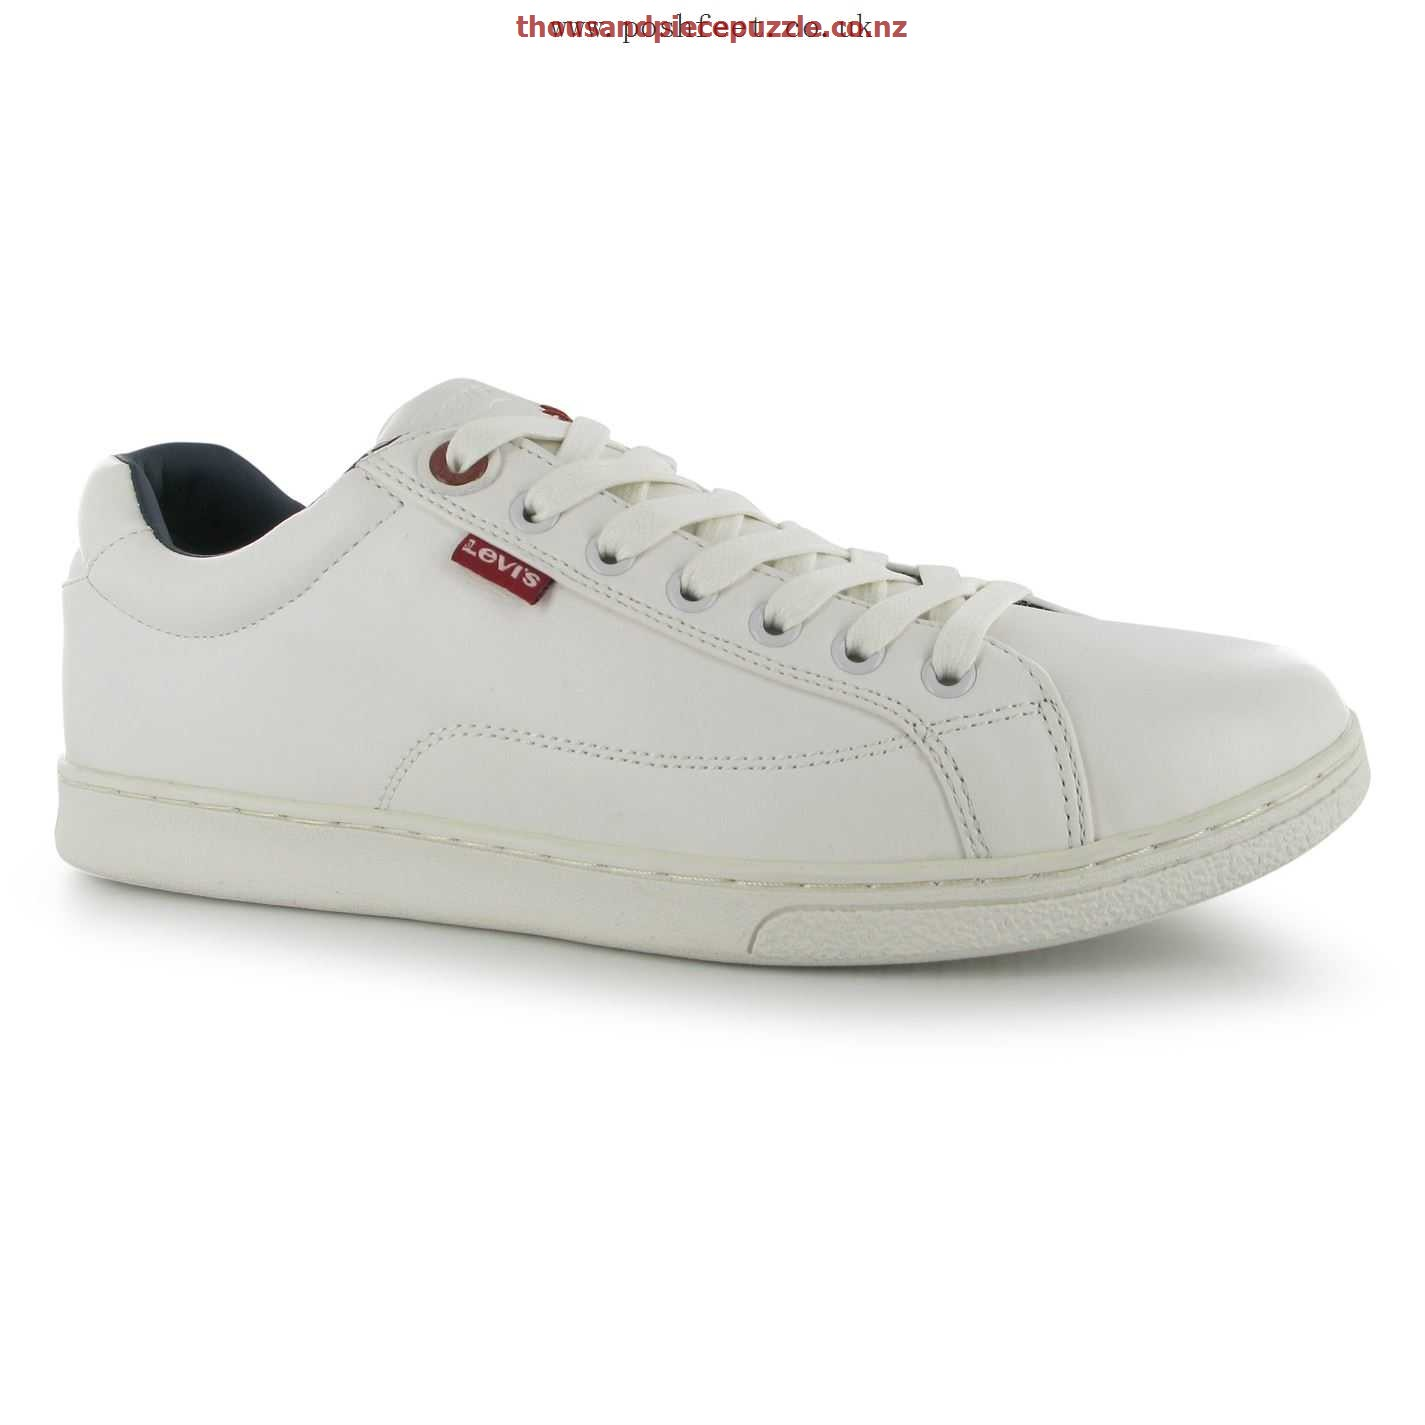 Sneakers homme levis